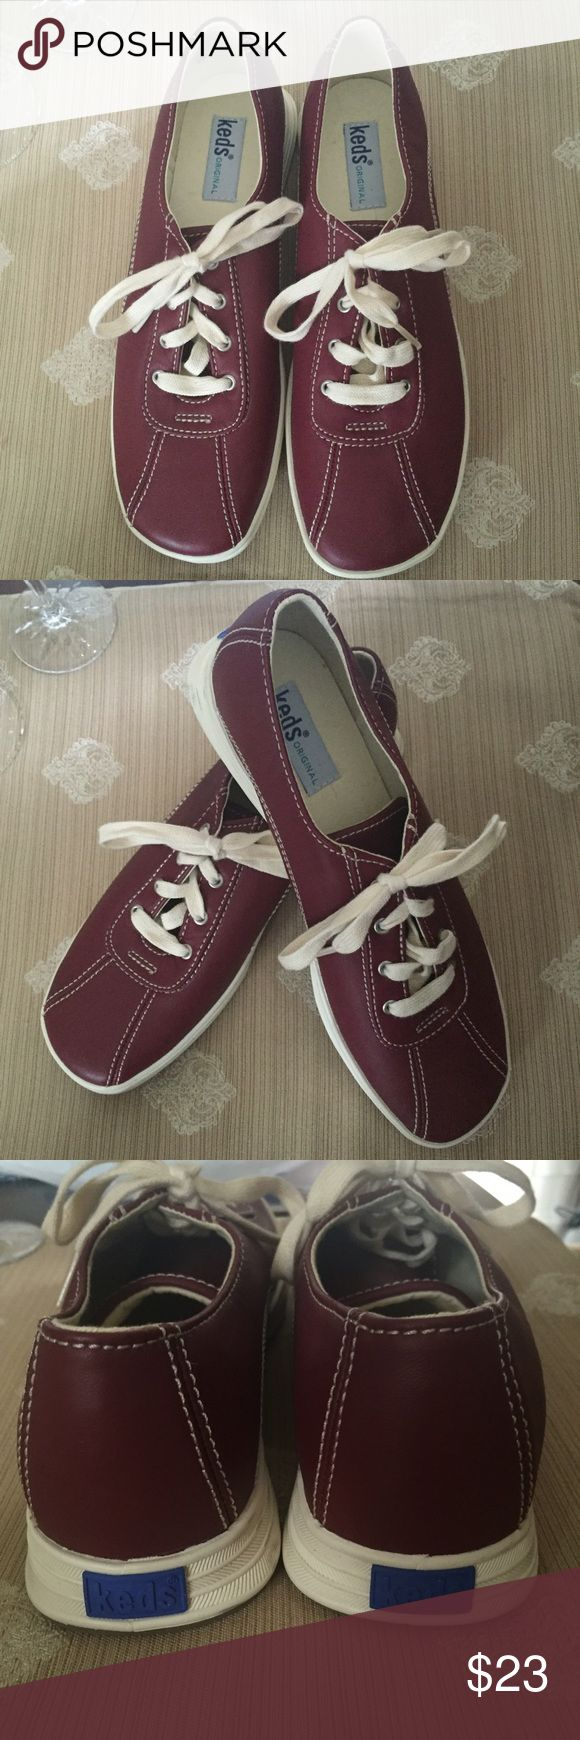 Leather Keds sneakers...size 9 Perfect new leather Keds sneakers...size 9...from a smoke-free home! Keds Shoes Sneakers